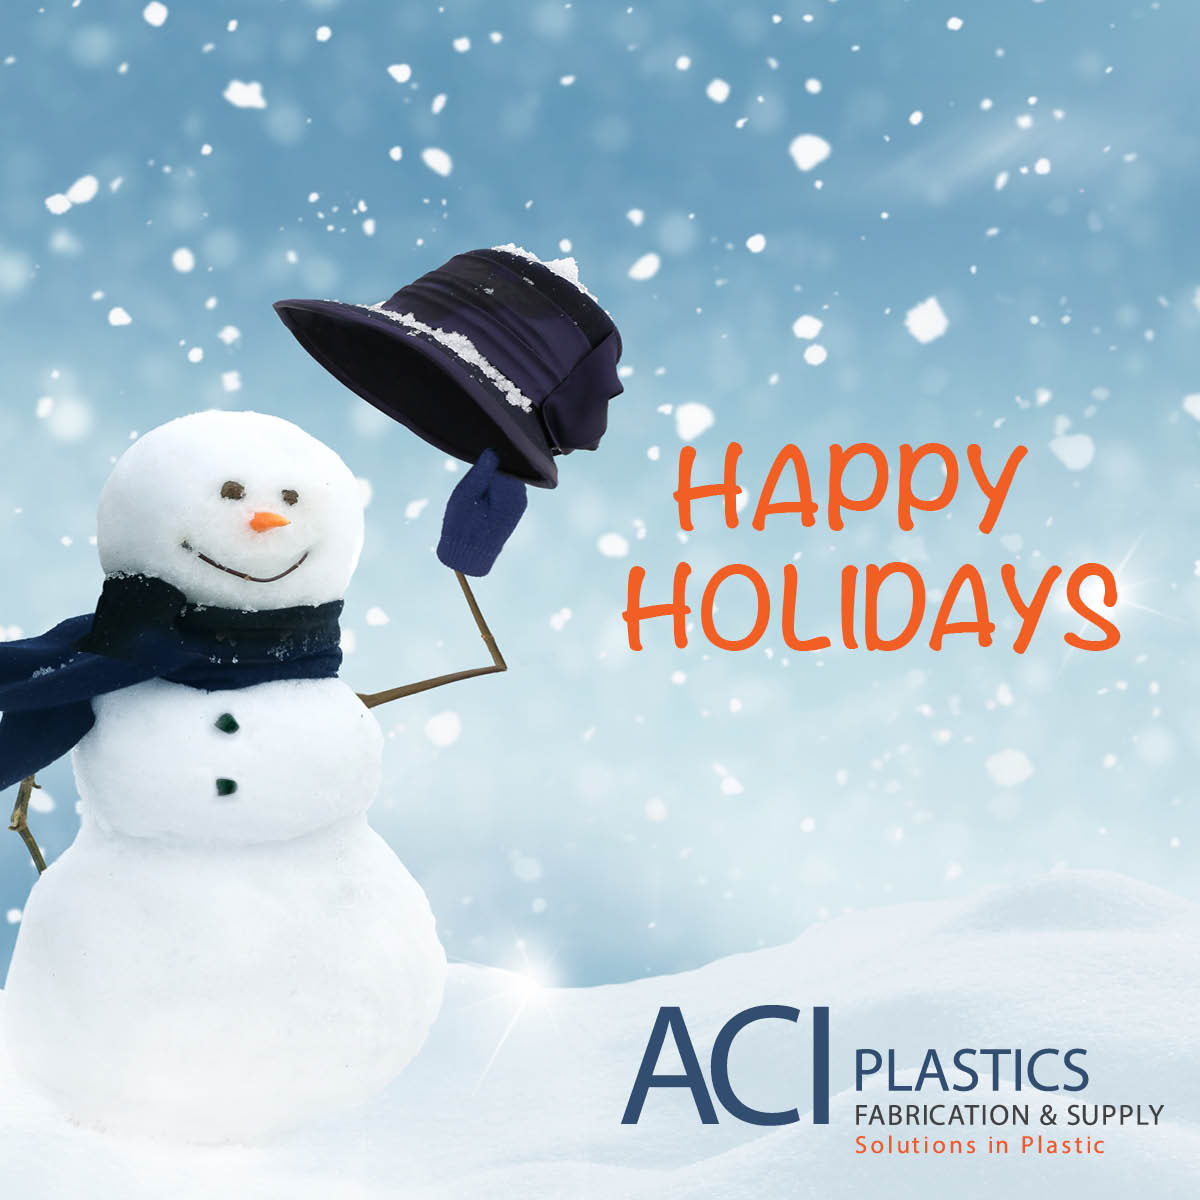 aci-plastics-happy-holiday-image-1200x1200